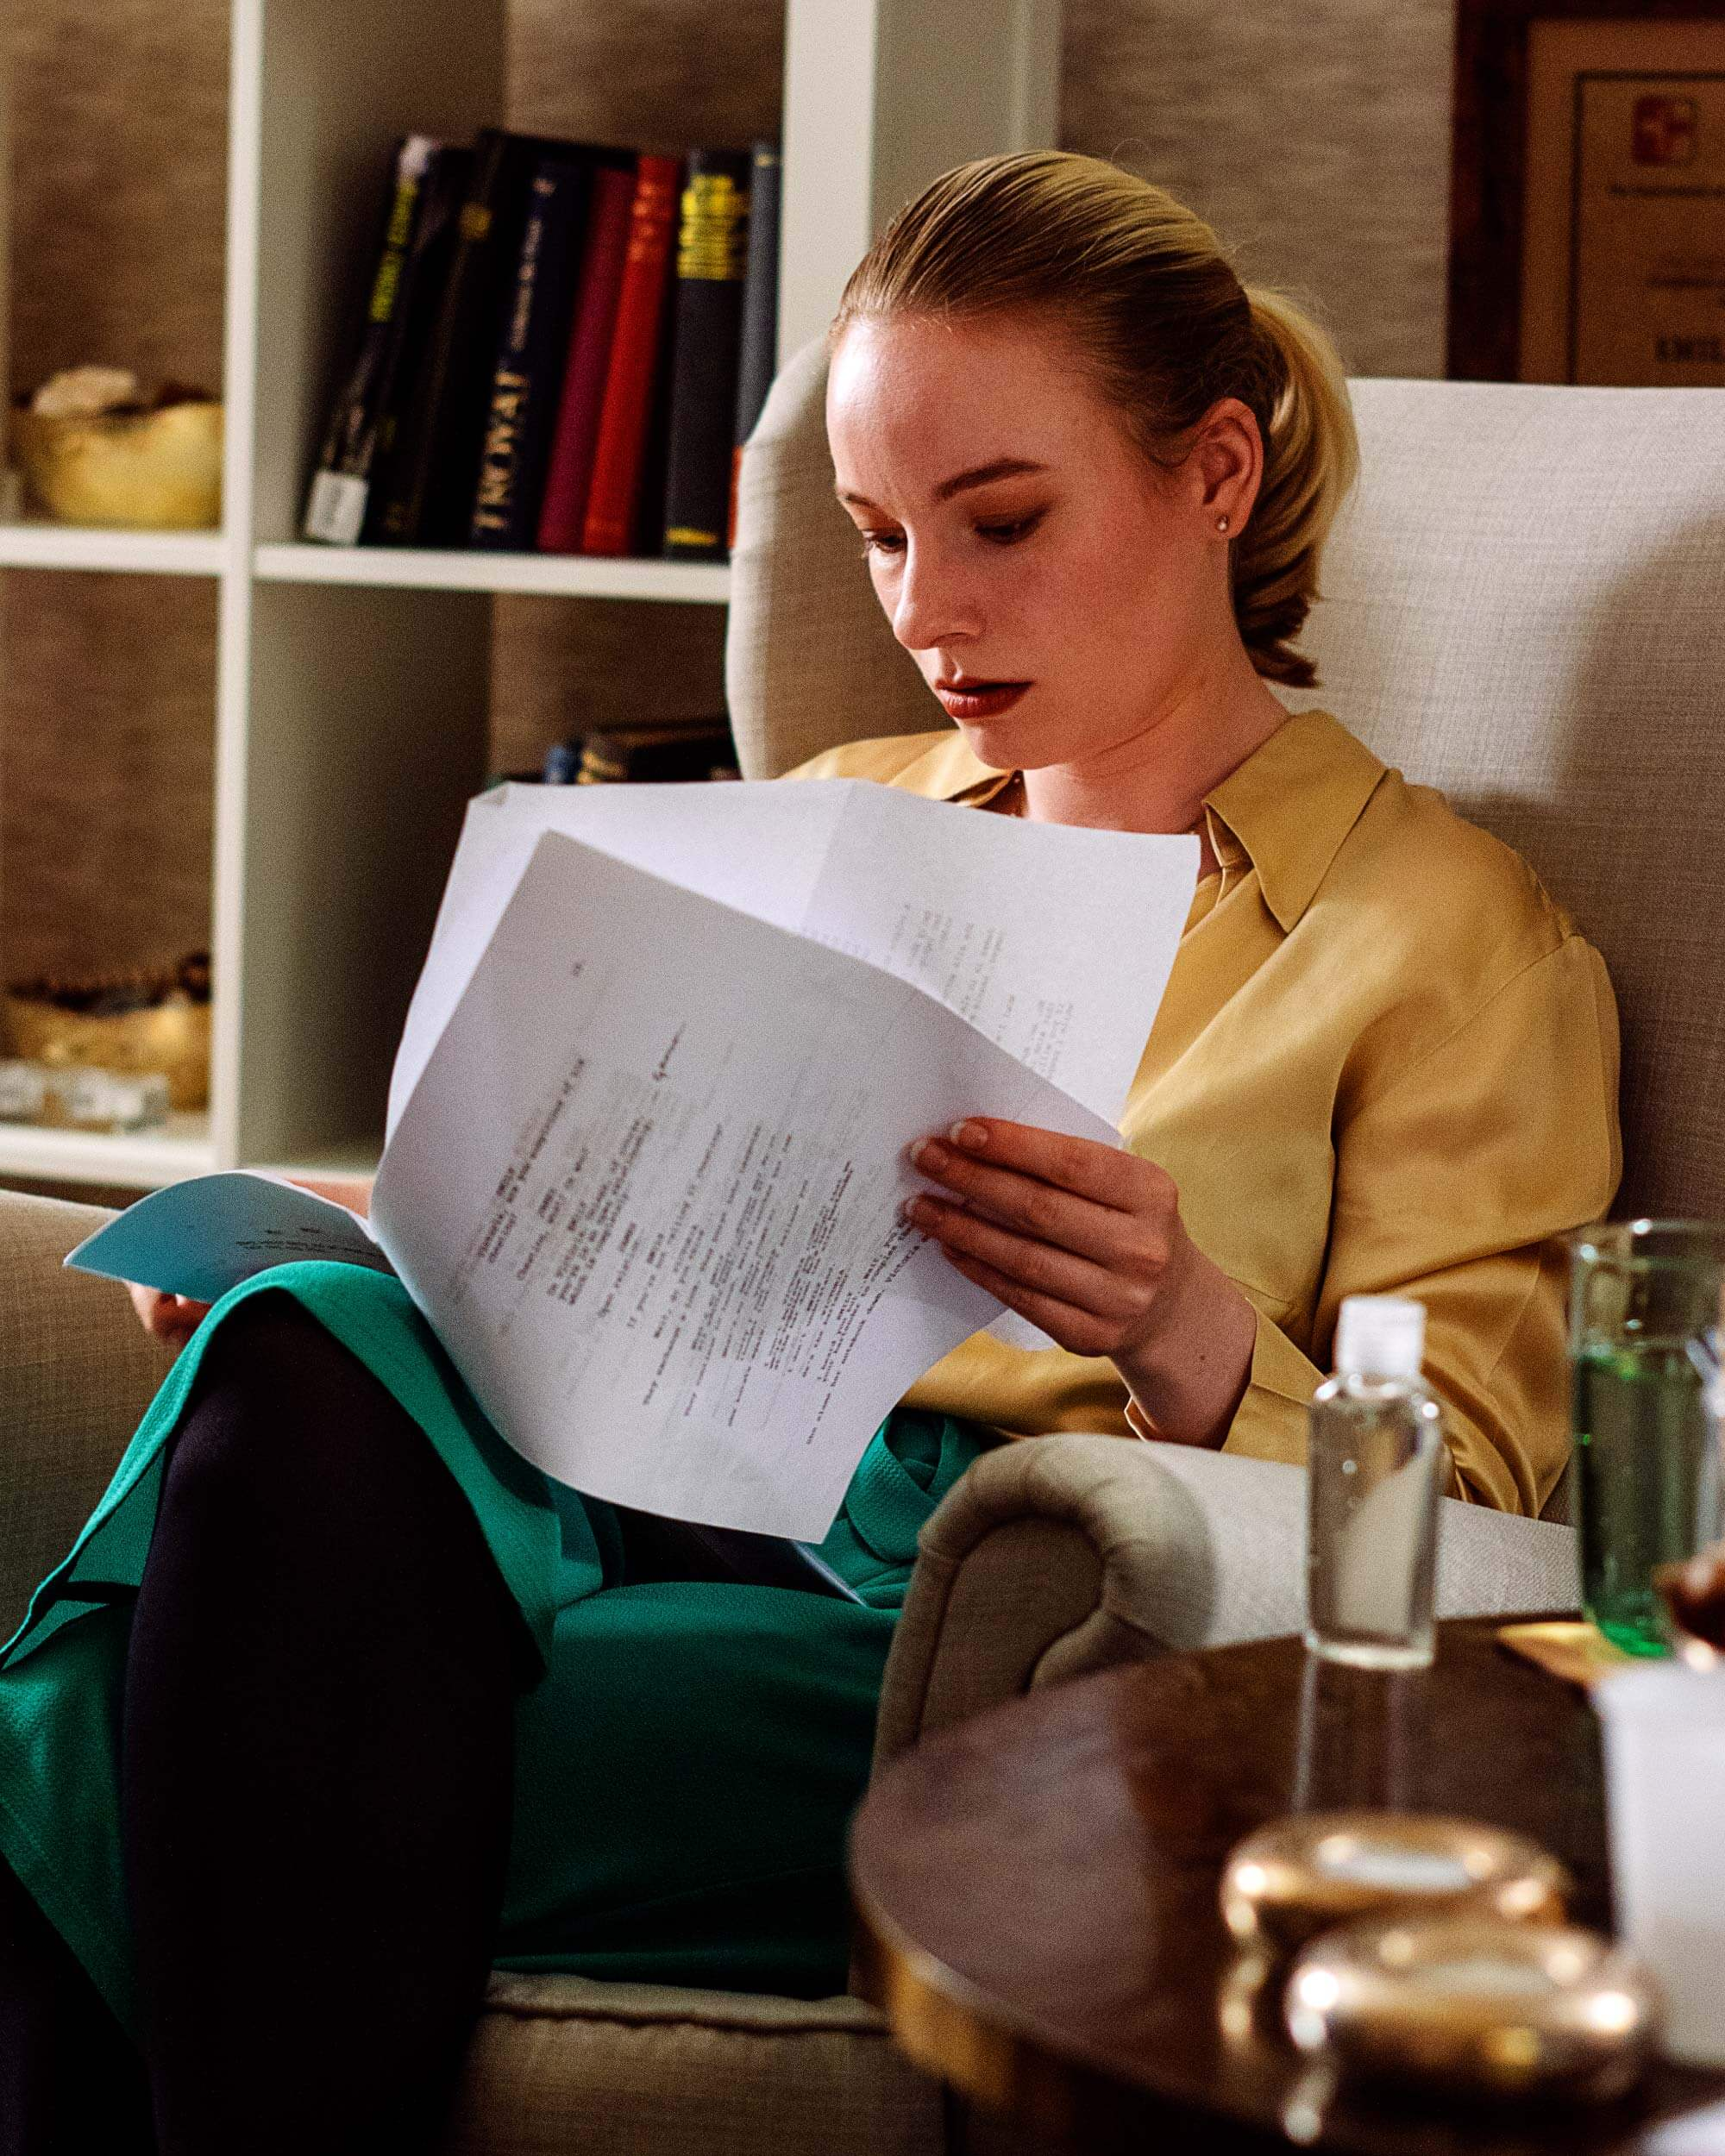 Woman in sitcom reads some papers in her living room.